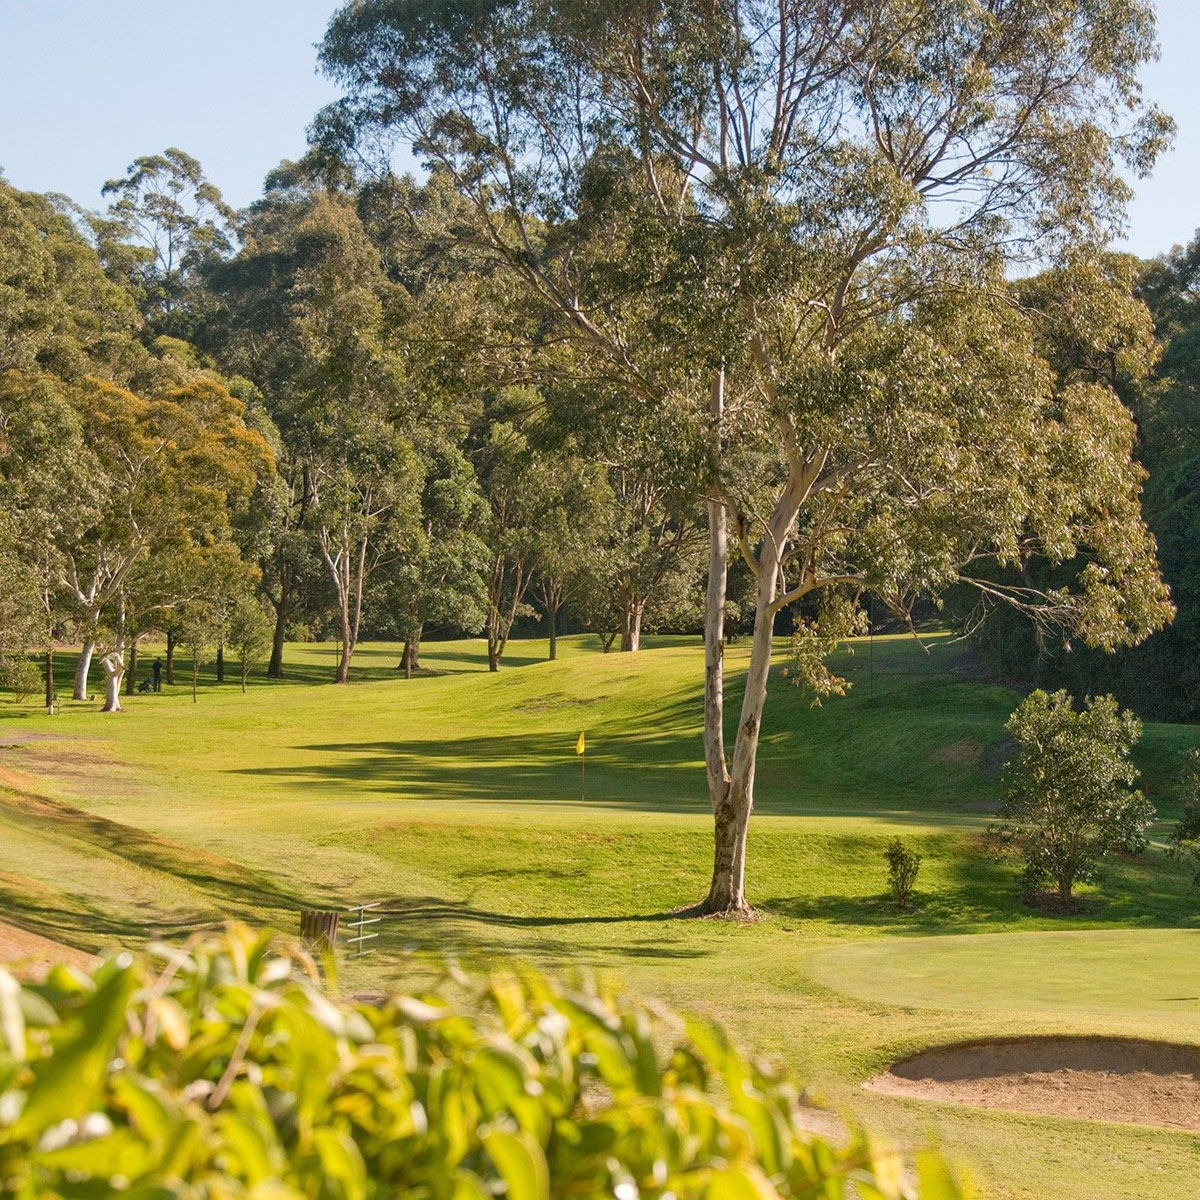 Views of the golf course at Lane Cove Golf Club